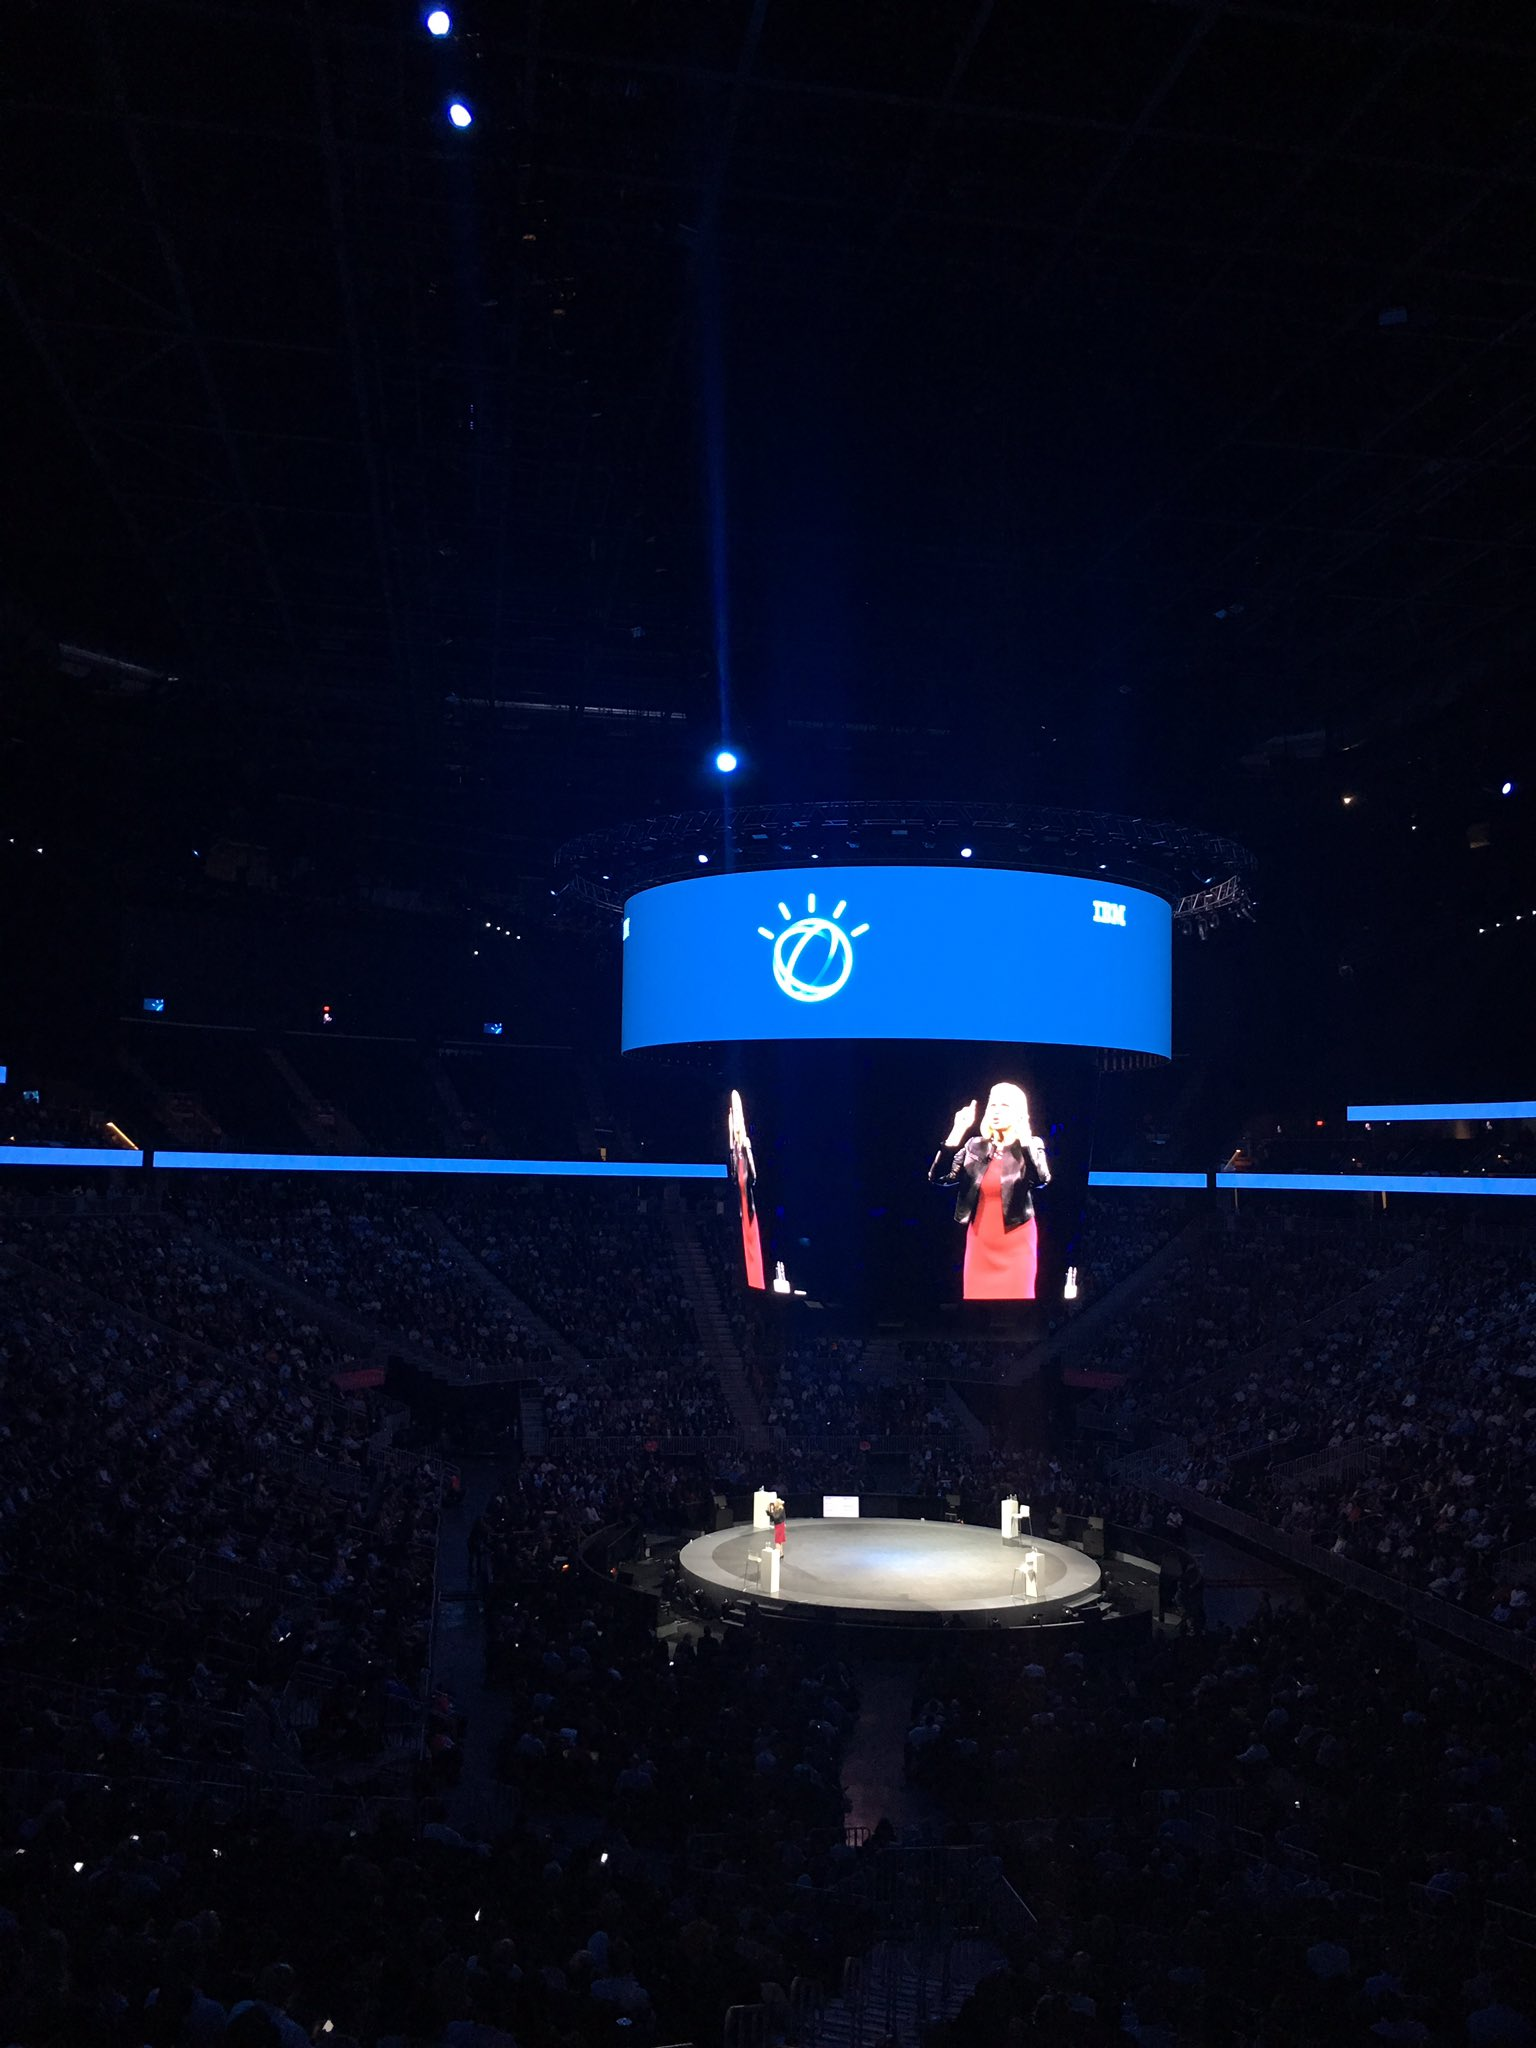 When it comes to #AI , it comes to the goal. Our goal: augmenting intelligence aka extending your expertise #ibmwow https://t.co/9Ys0BD1q7r